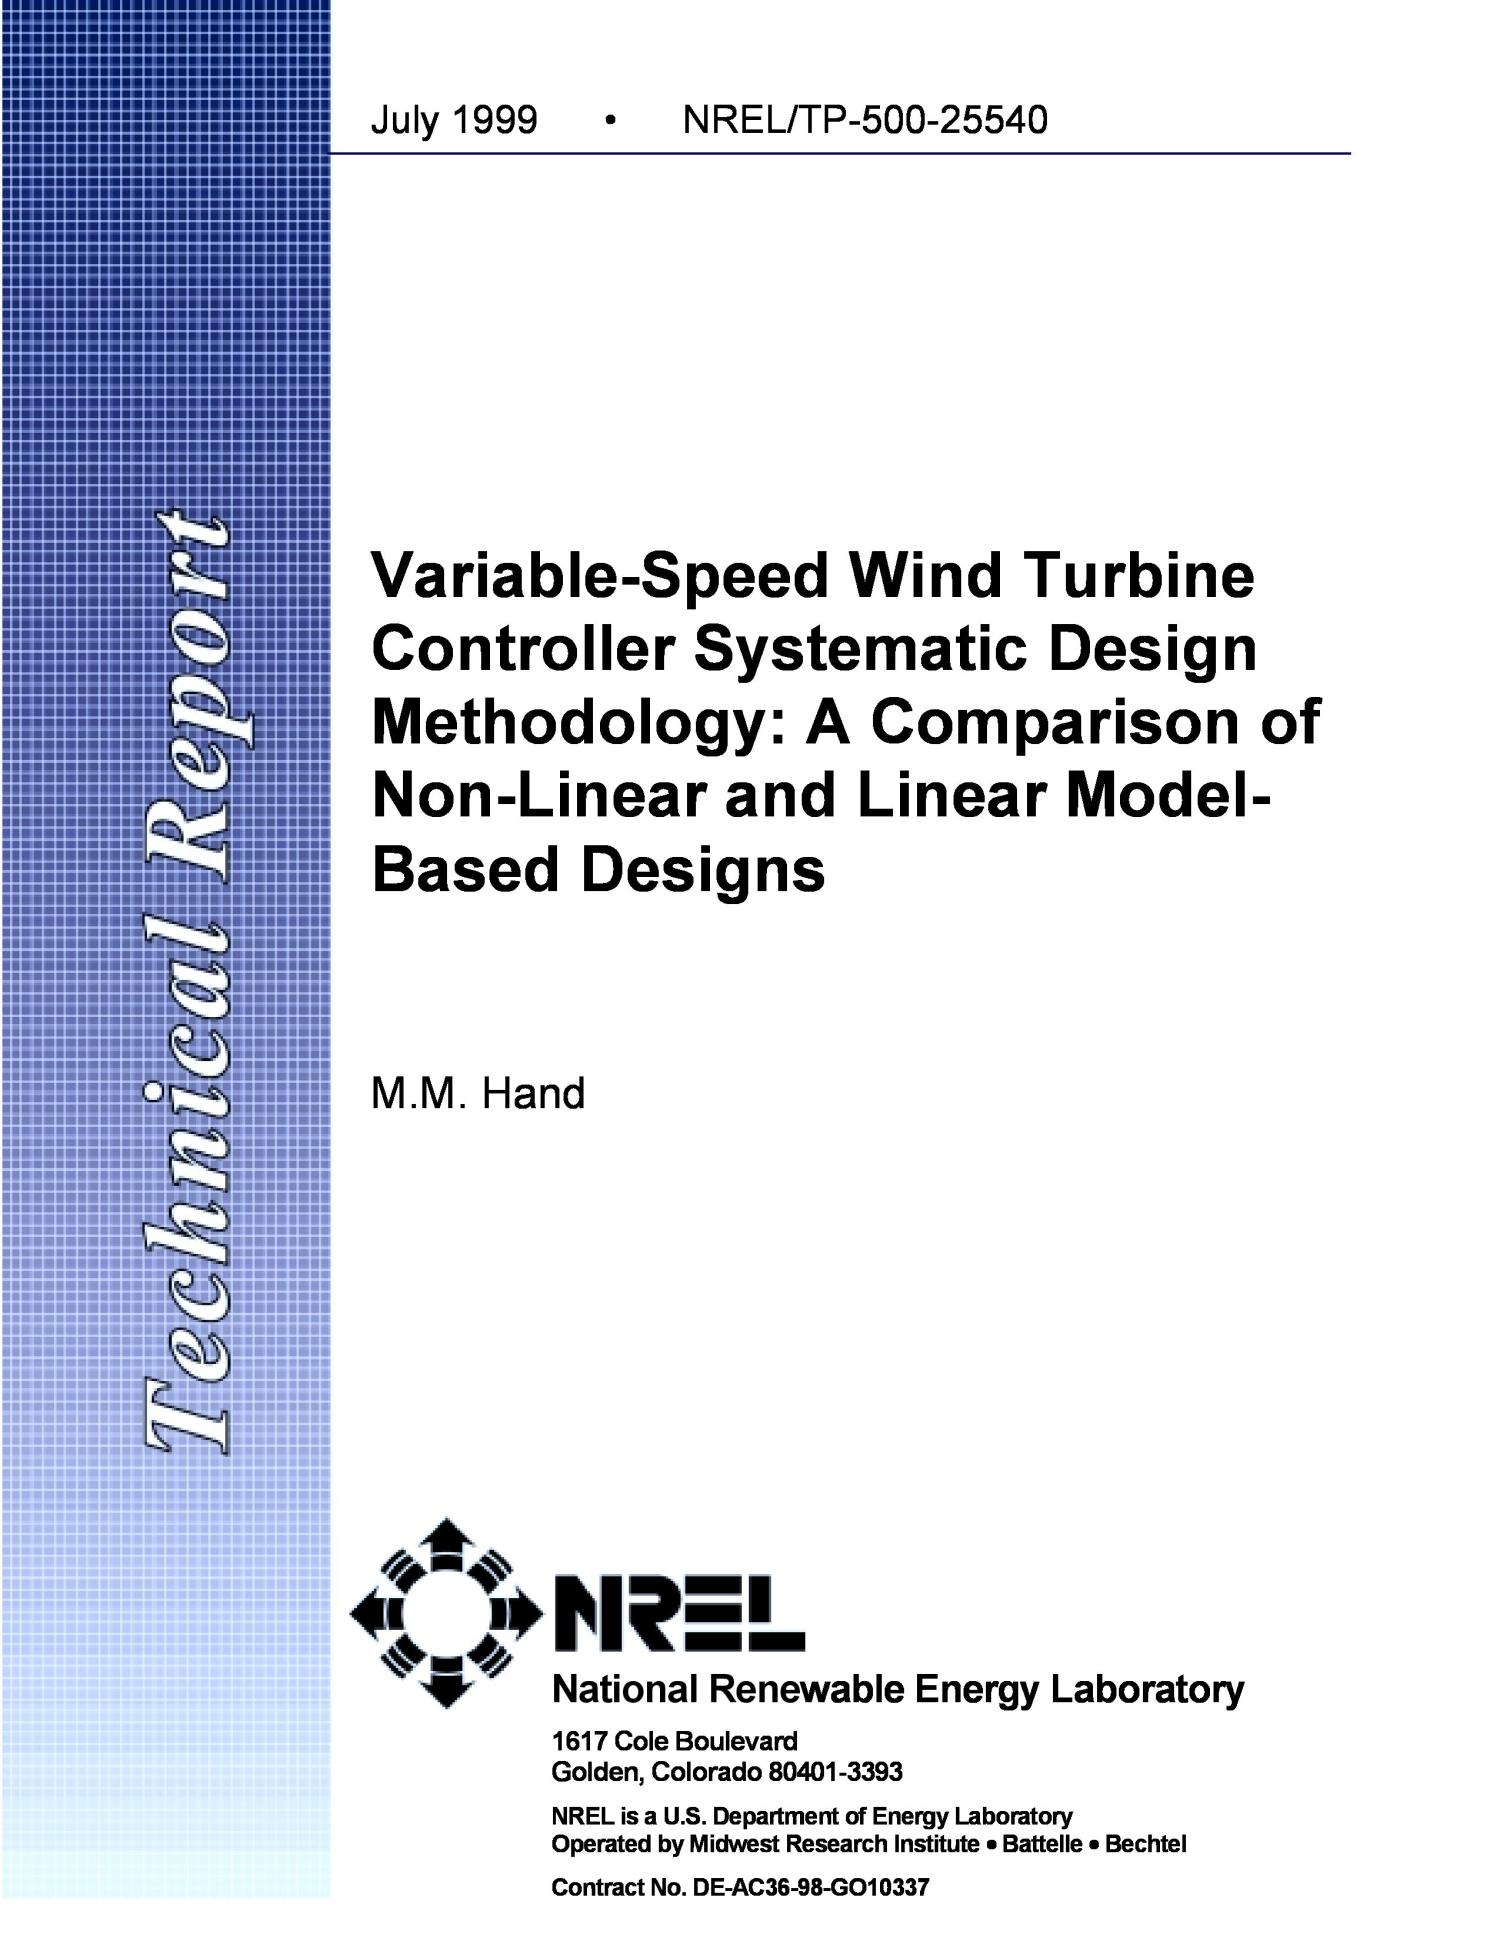 Variable Speed Wind Turbine Controller Systematic Design